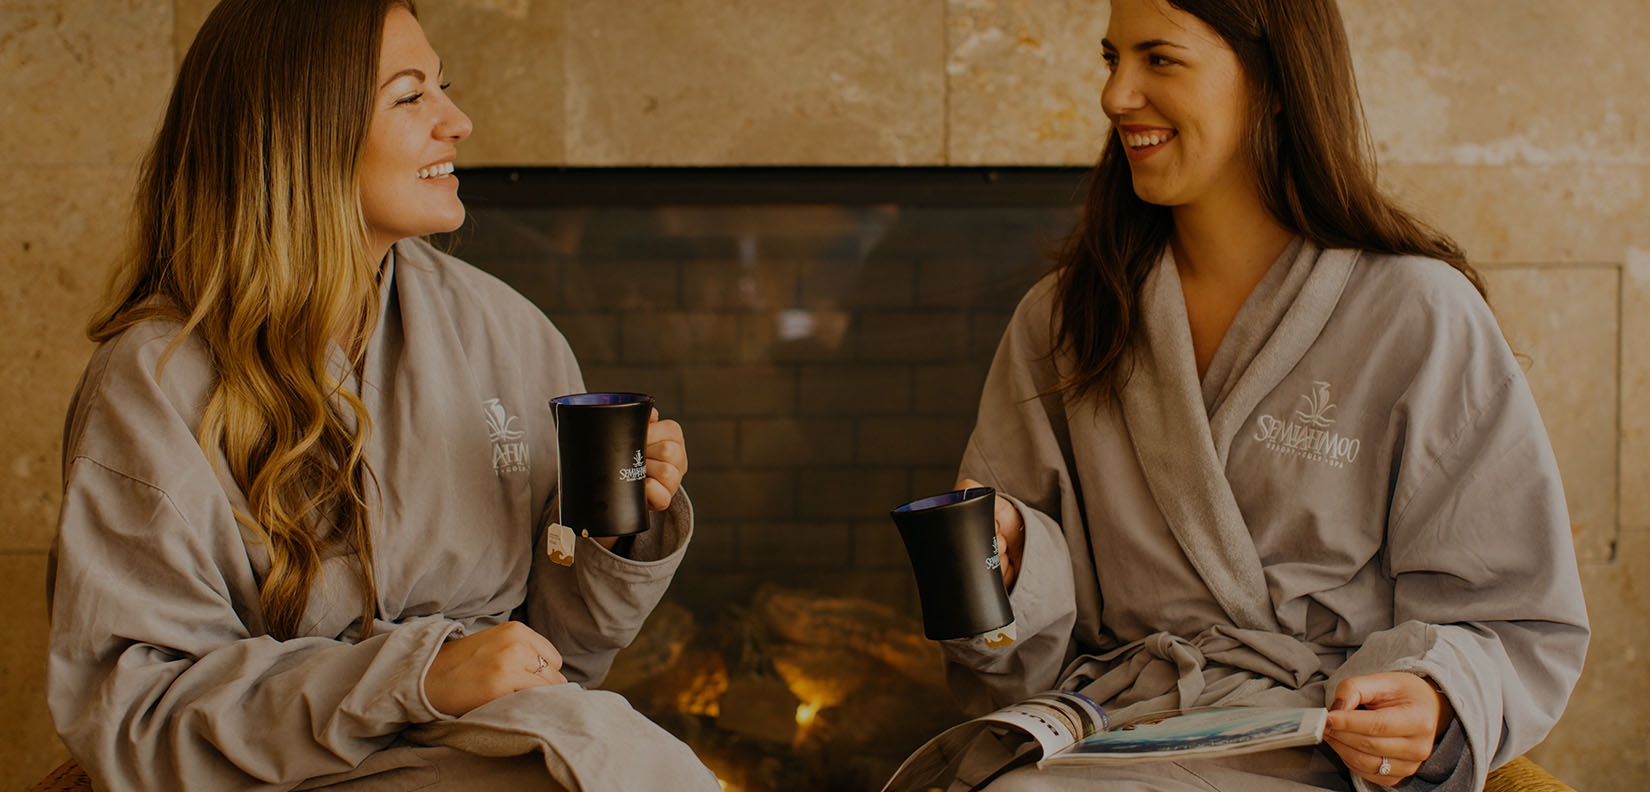 women in spa robes